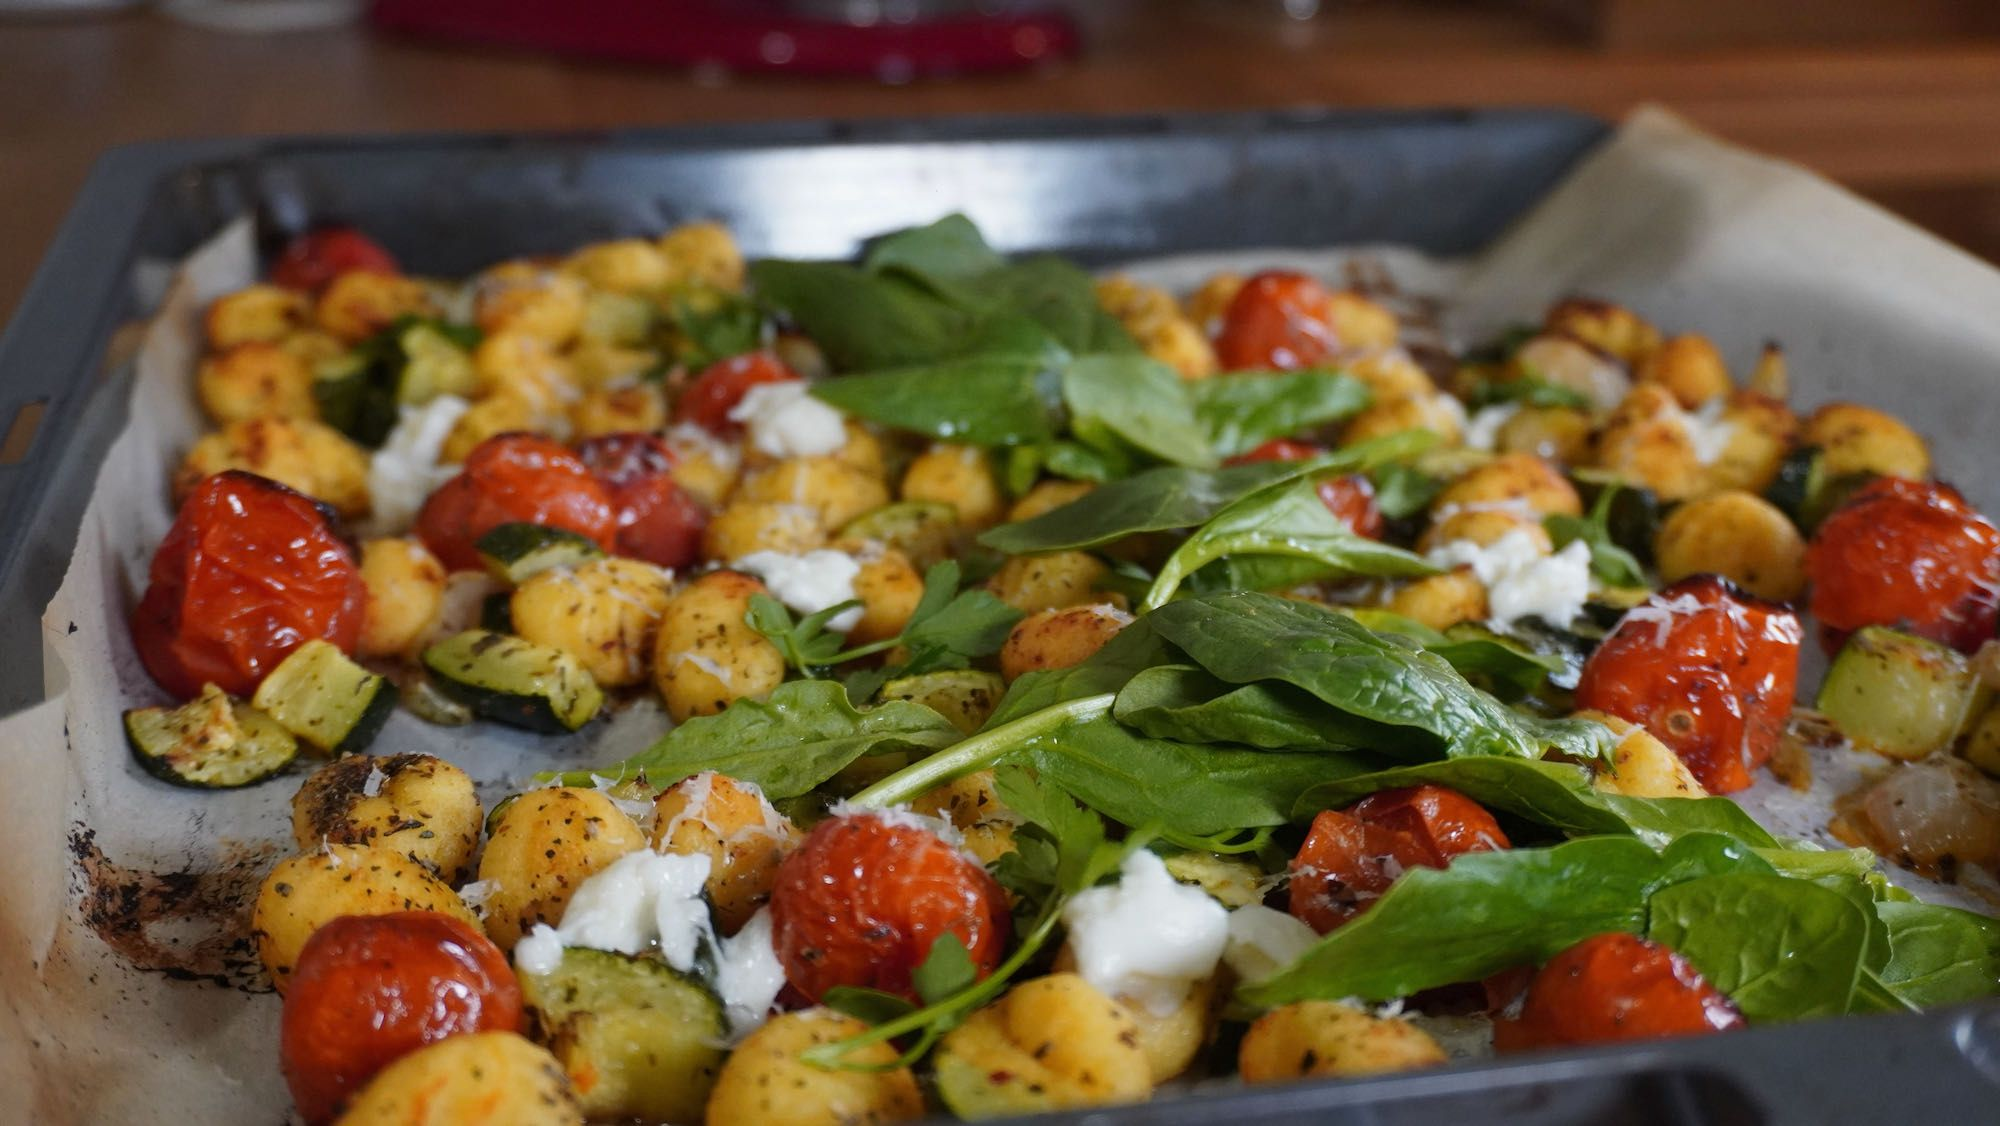 What's for Dinner? Roasted Gnocchi sheet pan